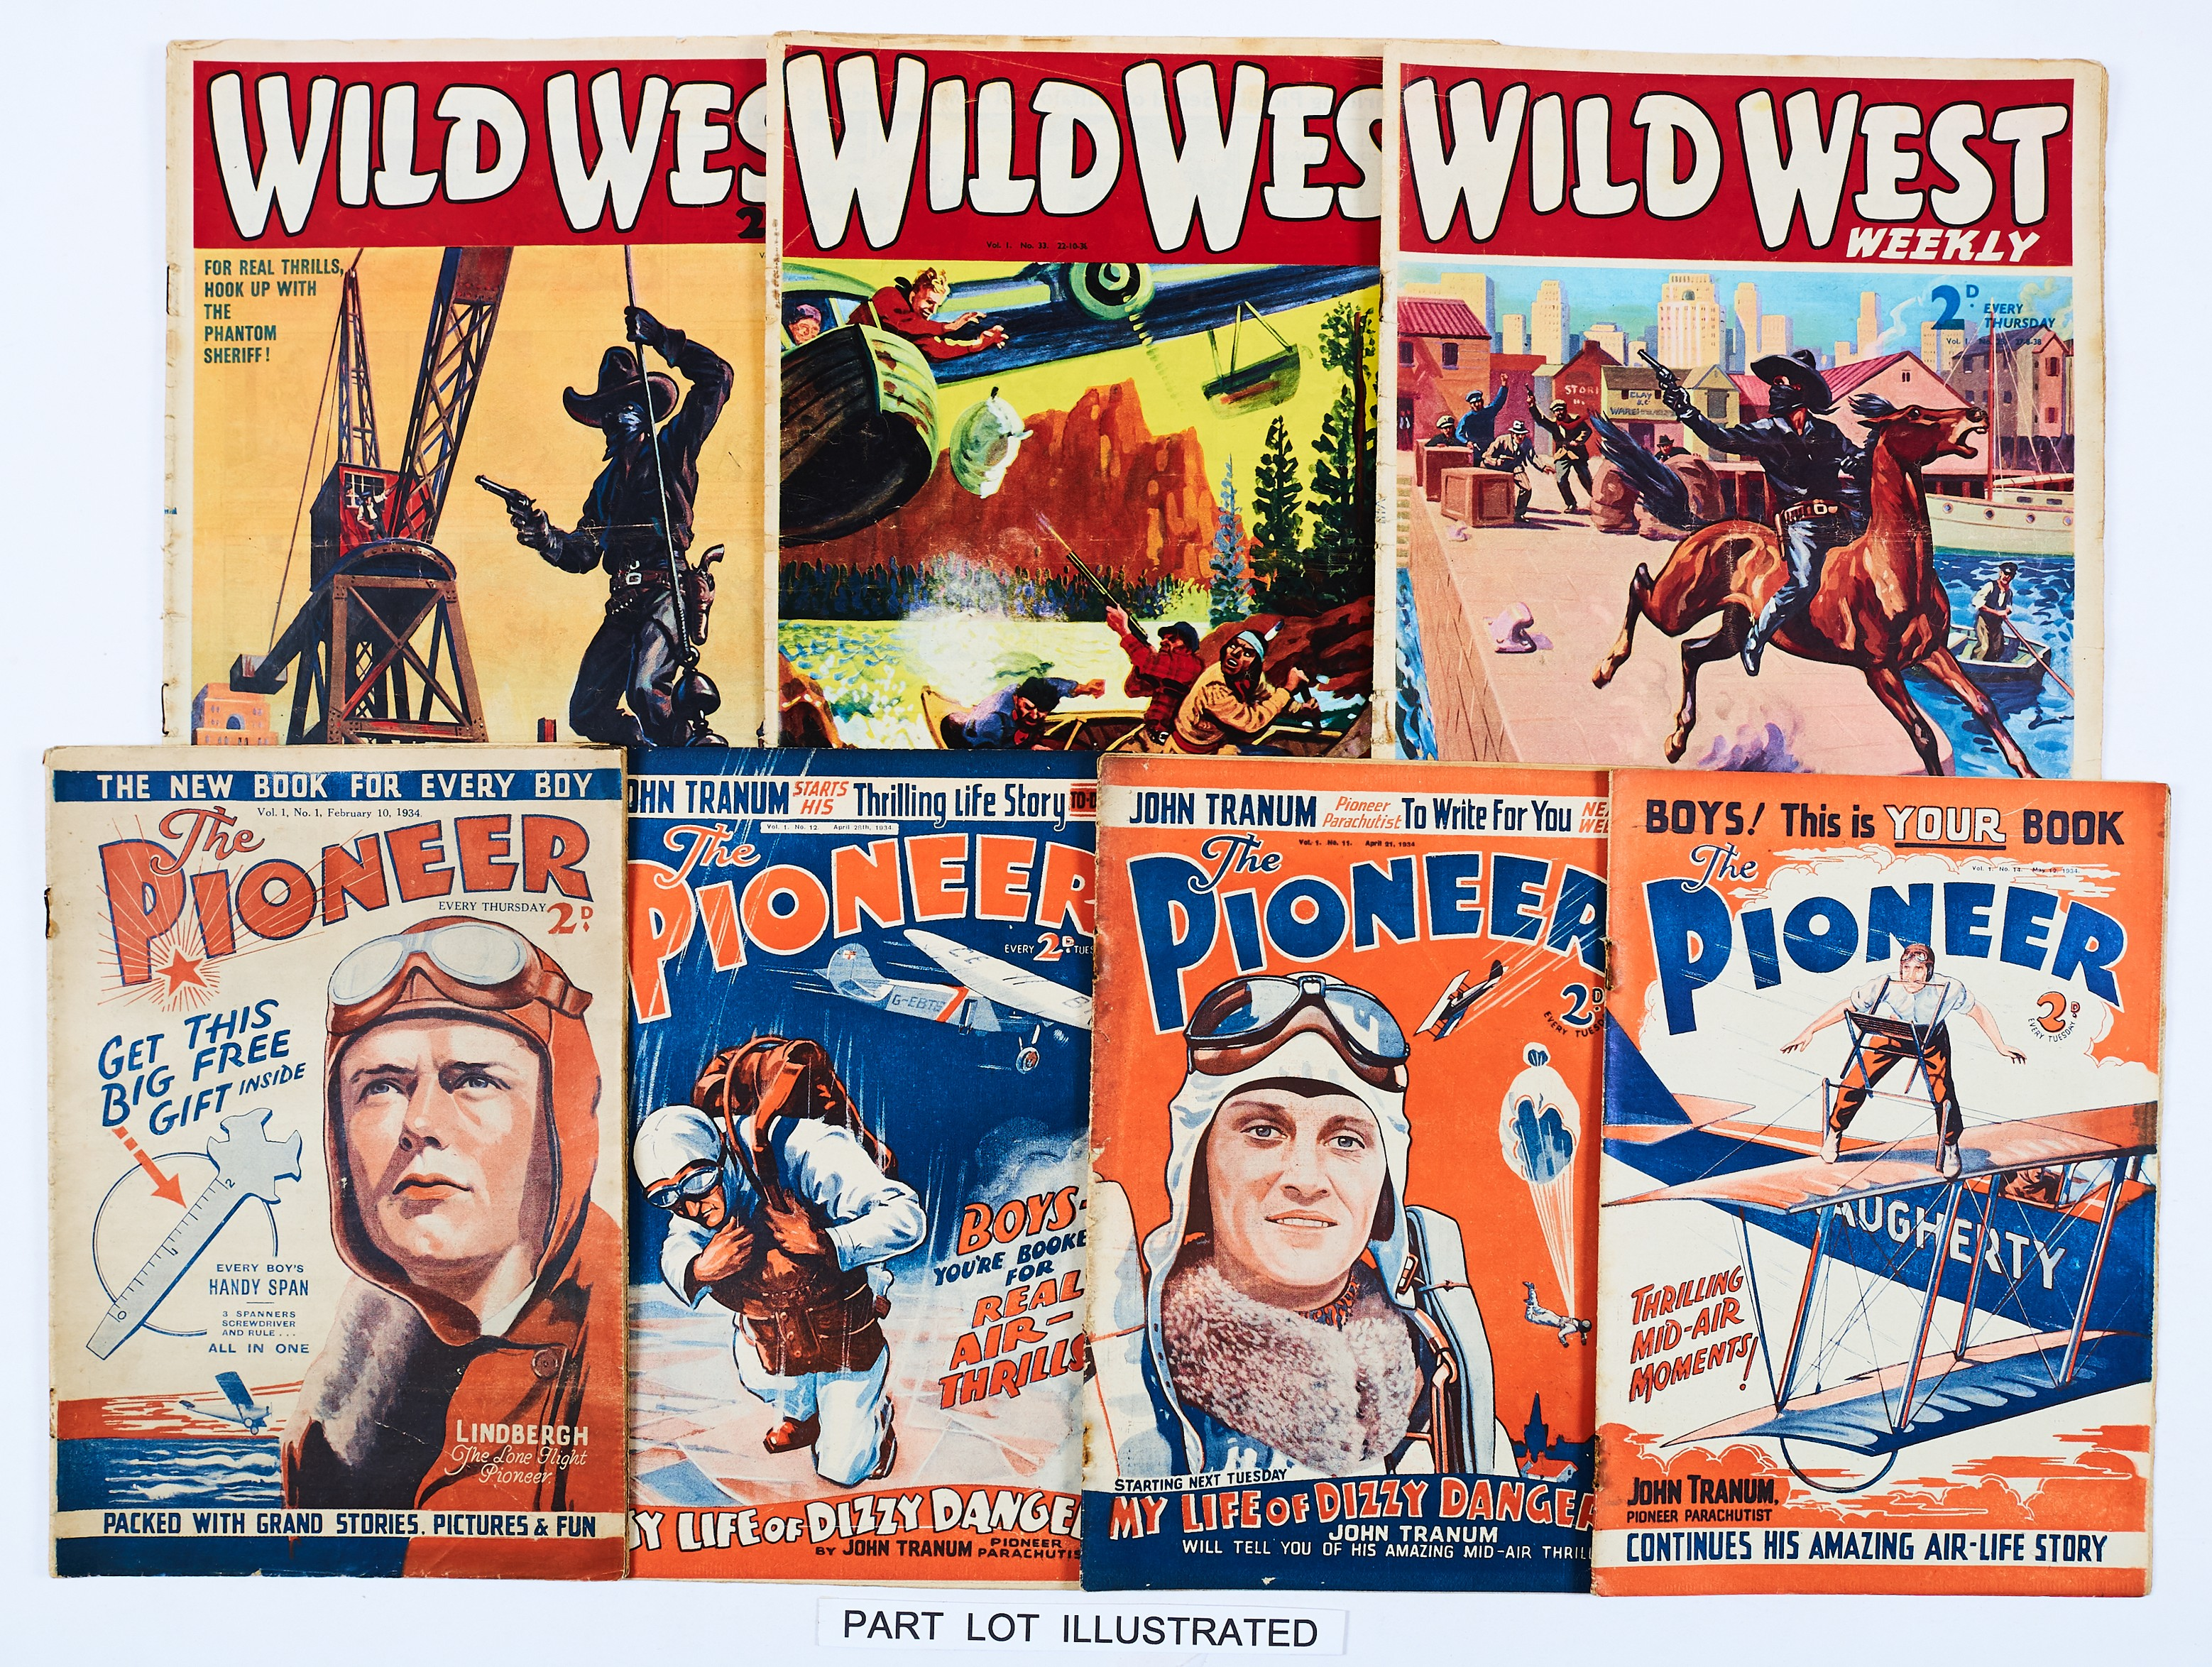 Lot 14 - Pioneer (1934) 1, 11, 12, 14. With Wild West (1939 Am. Press) Vol. 1: No 3, 8, 21, 24-27, 29, 33,